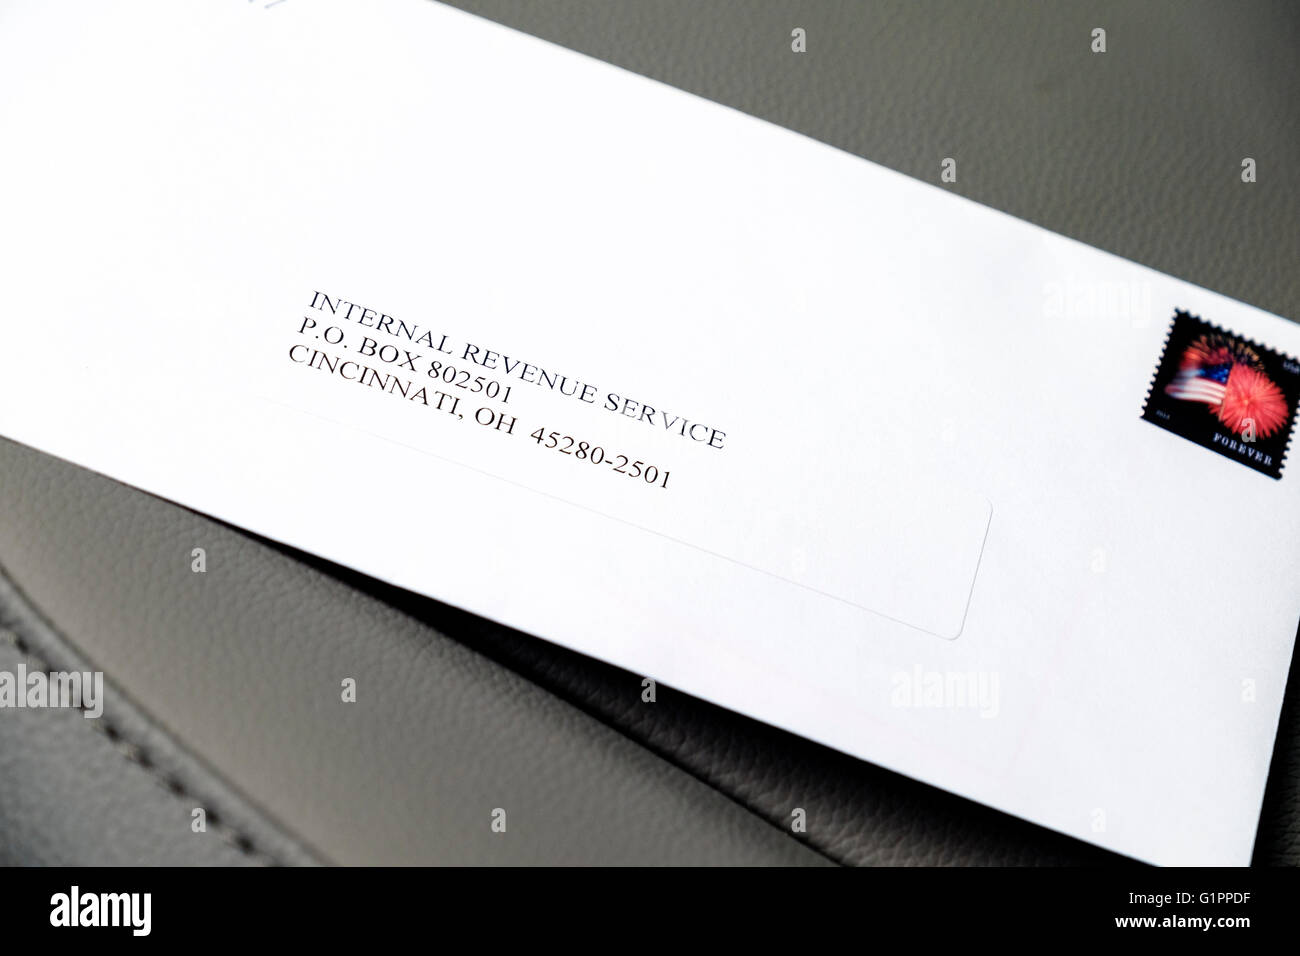 An Envelope With The Internal Revenue Service Address And Stamp